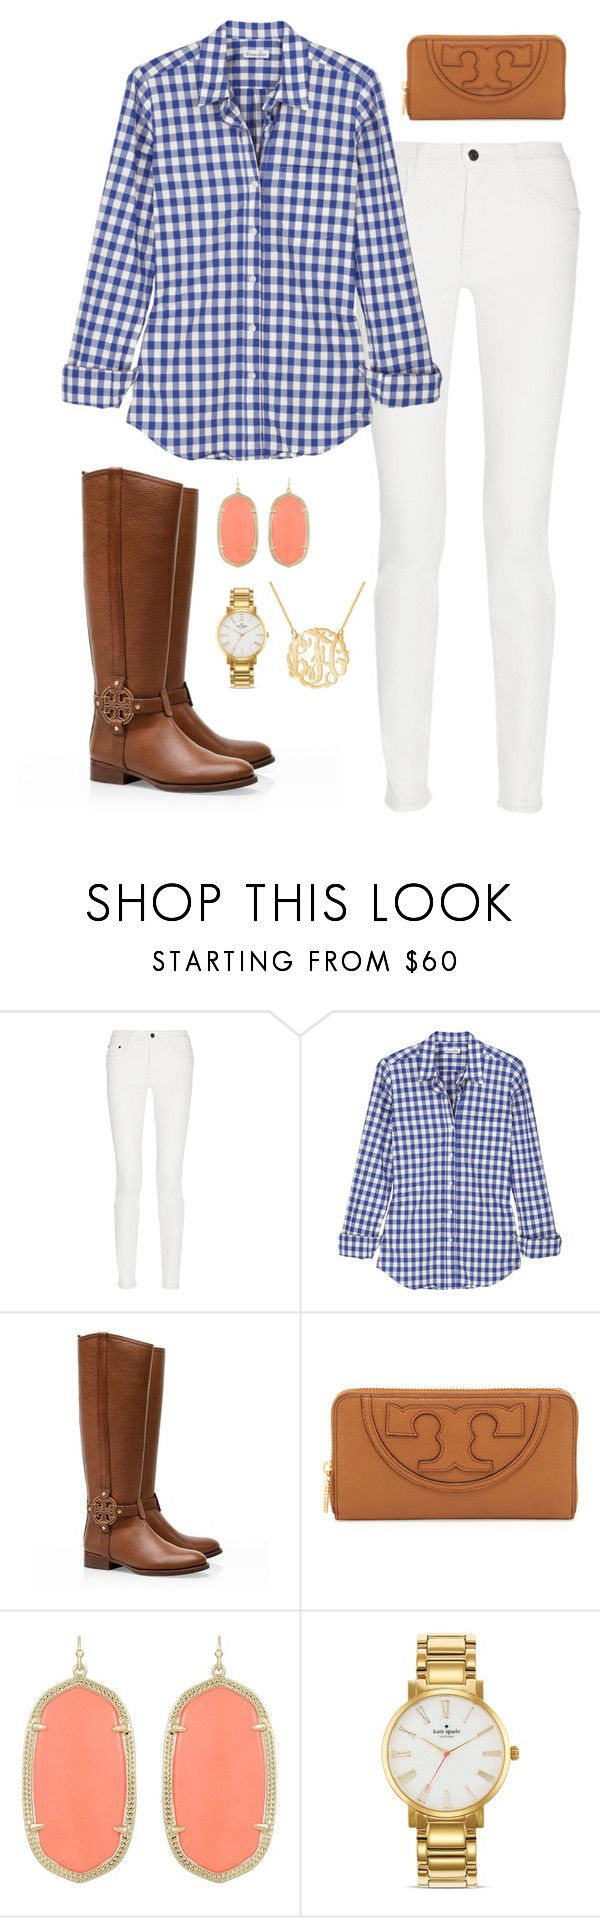 """Fall preppy outfit"" by meganbriody ❤ liked on Polyvore featuring Proenza Schouler, Steven Alan, Tory Burch, Kendra Scott and Kate Spade"